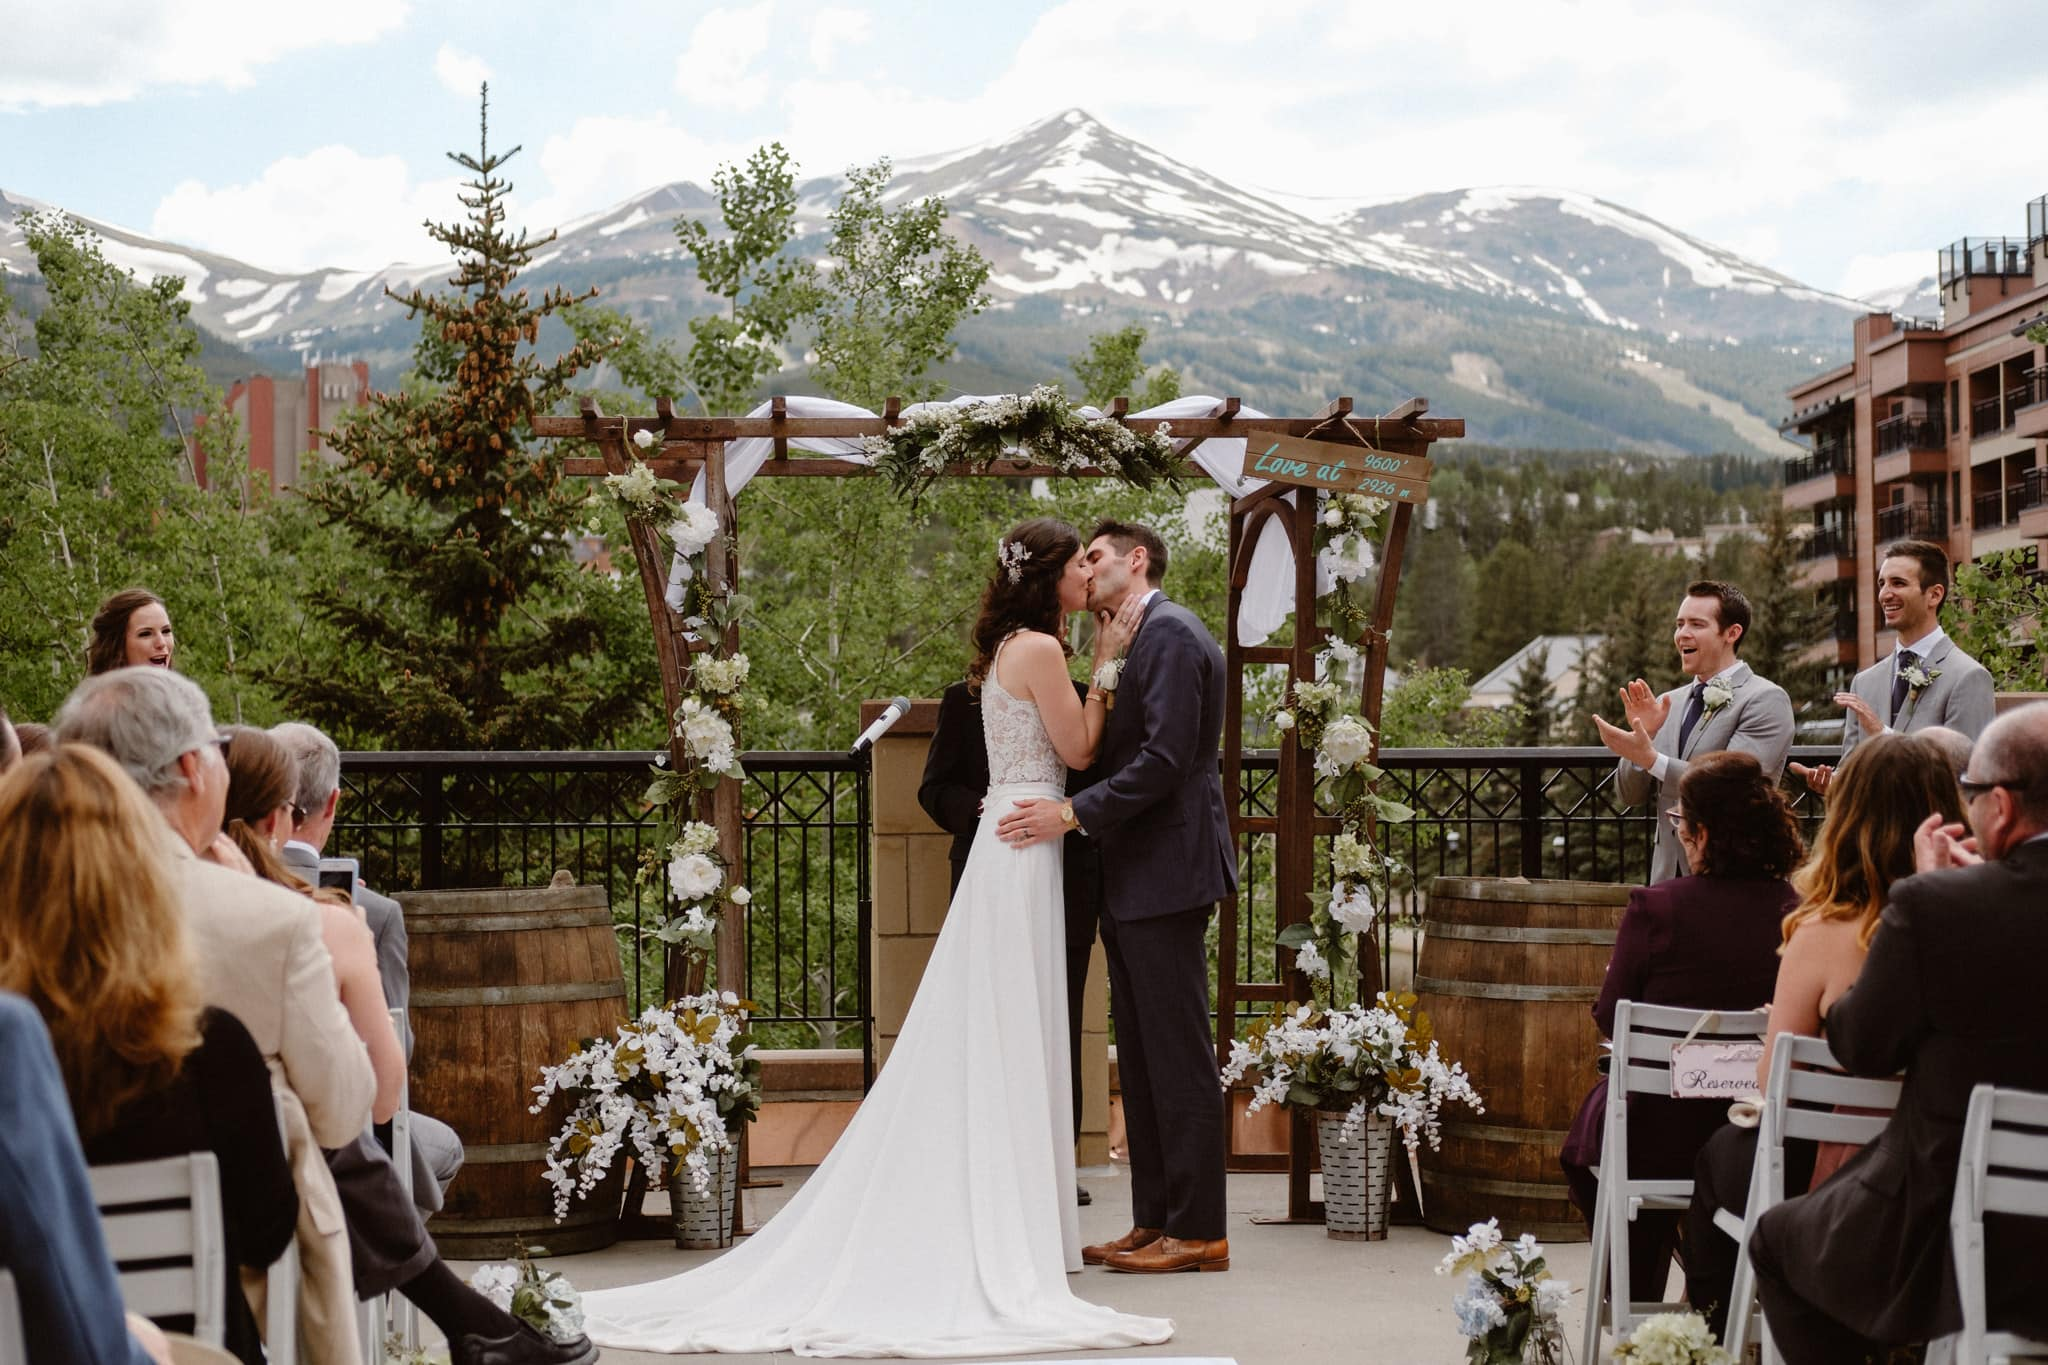 Bride and groom first kiss at Main Street Station wedding ceremony, Breckenridge Colorado ski resort wedding photographer